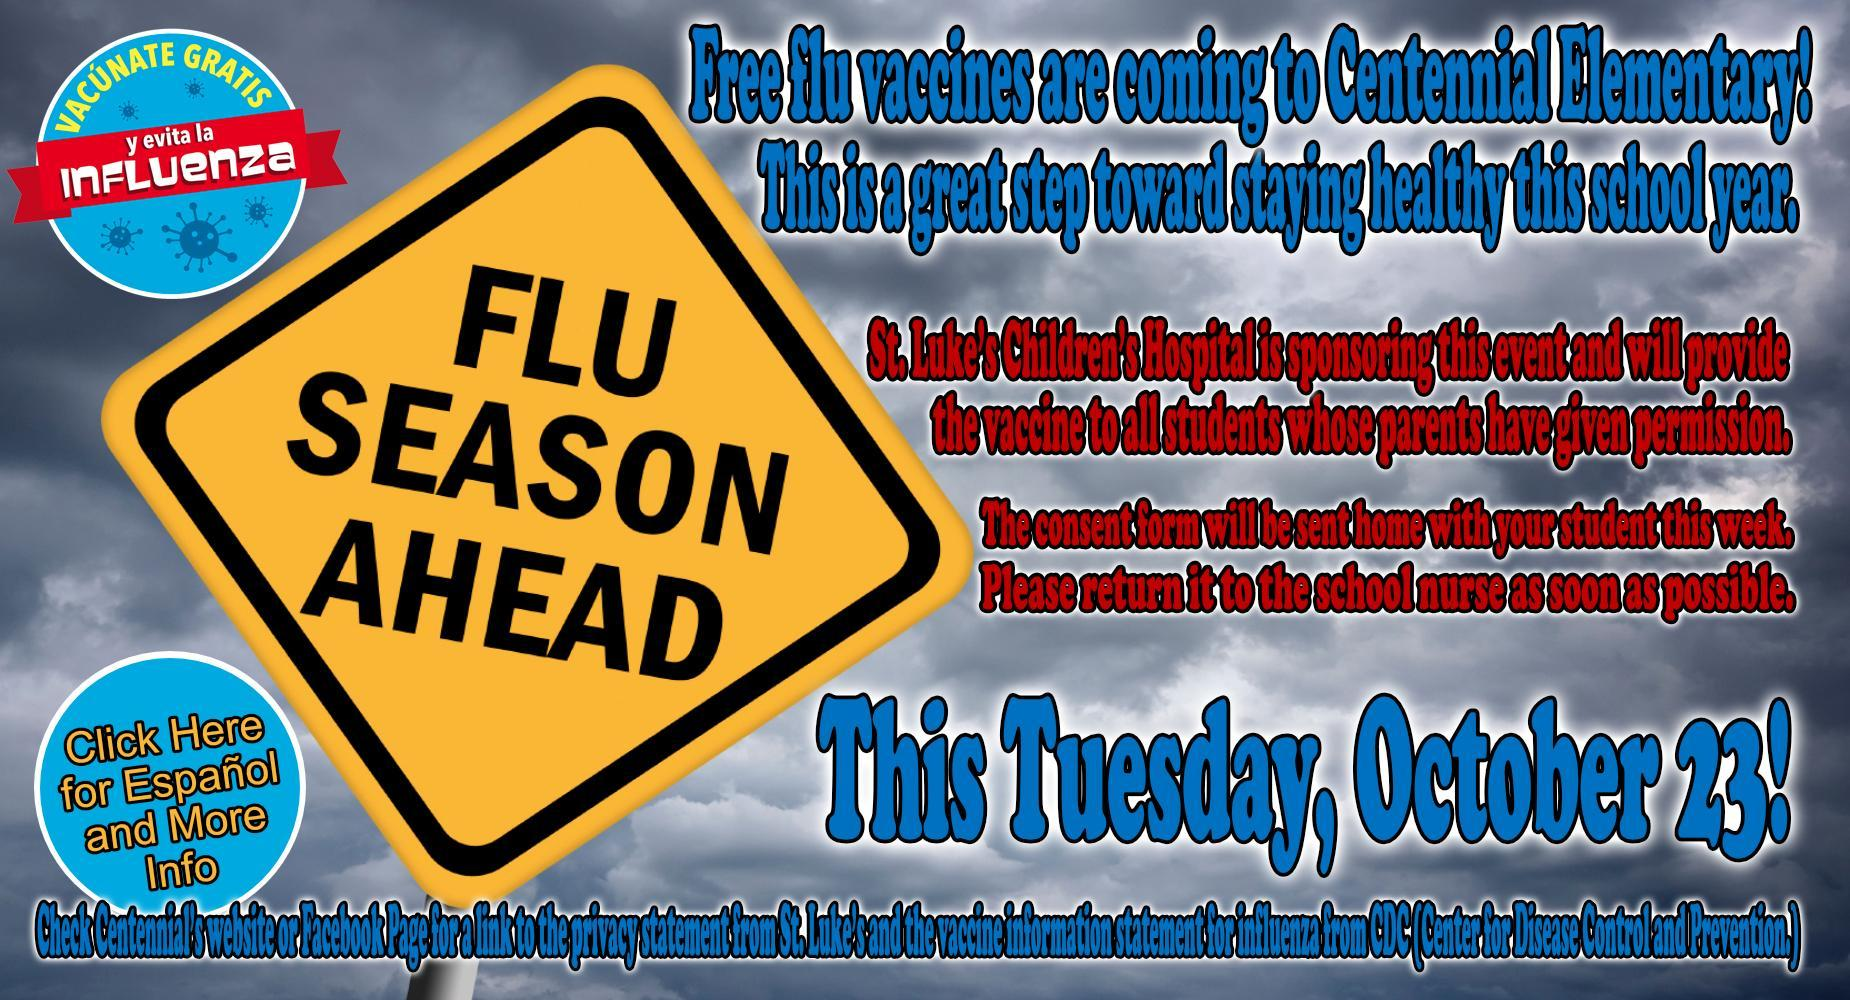 Free Student Flu Vaccinations - October 23rd